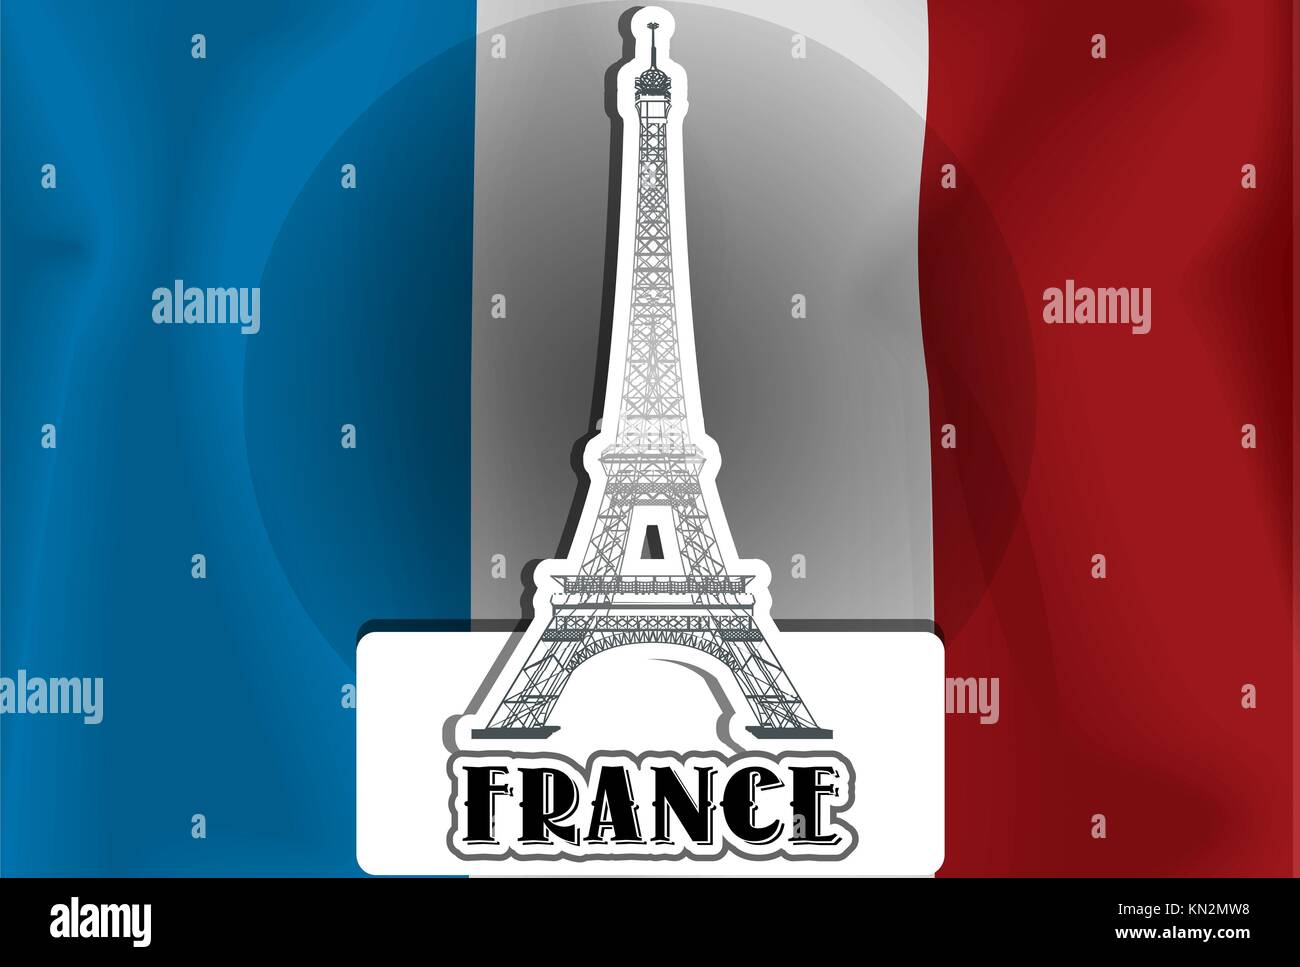 France, French Flag, Eiffel Tower vector illustration - Stock Image